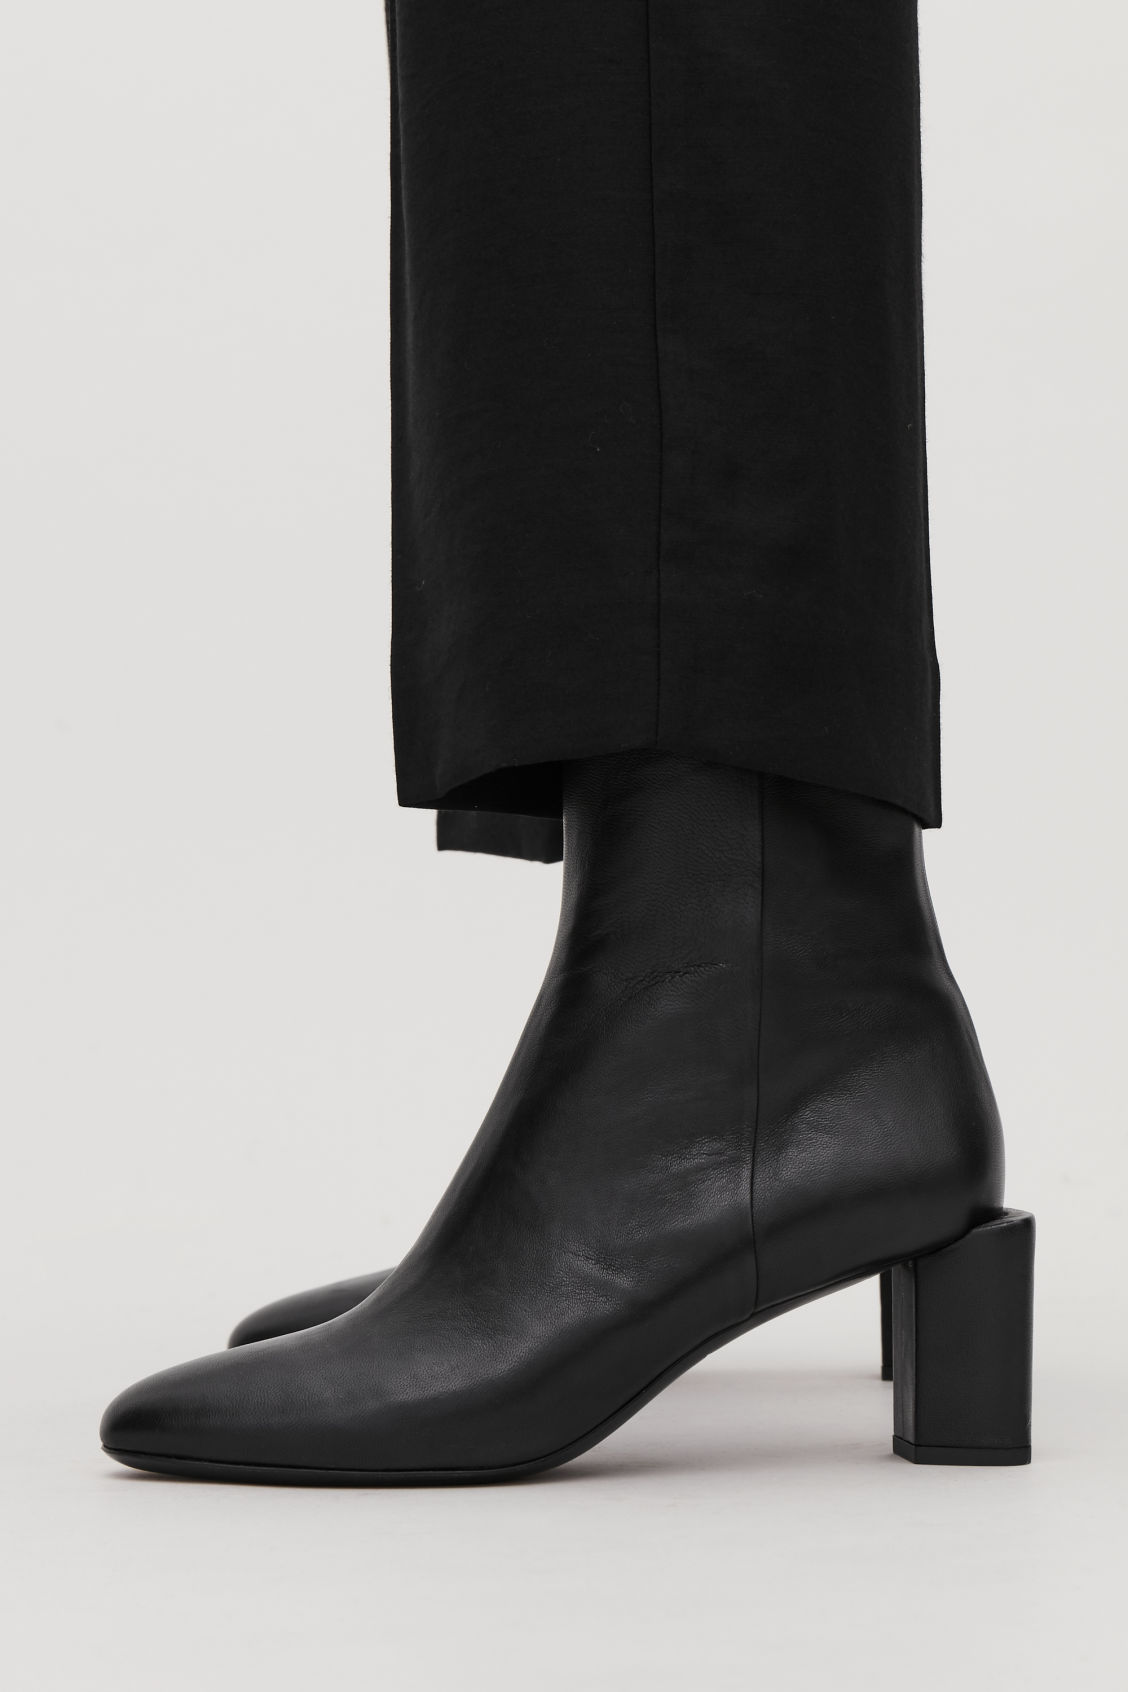 Detailed image of Cos sculptural leather ankle boots in black